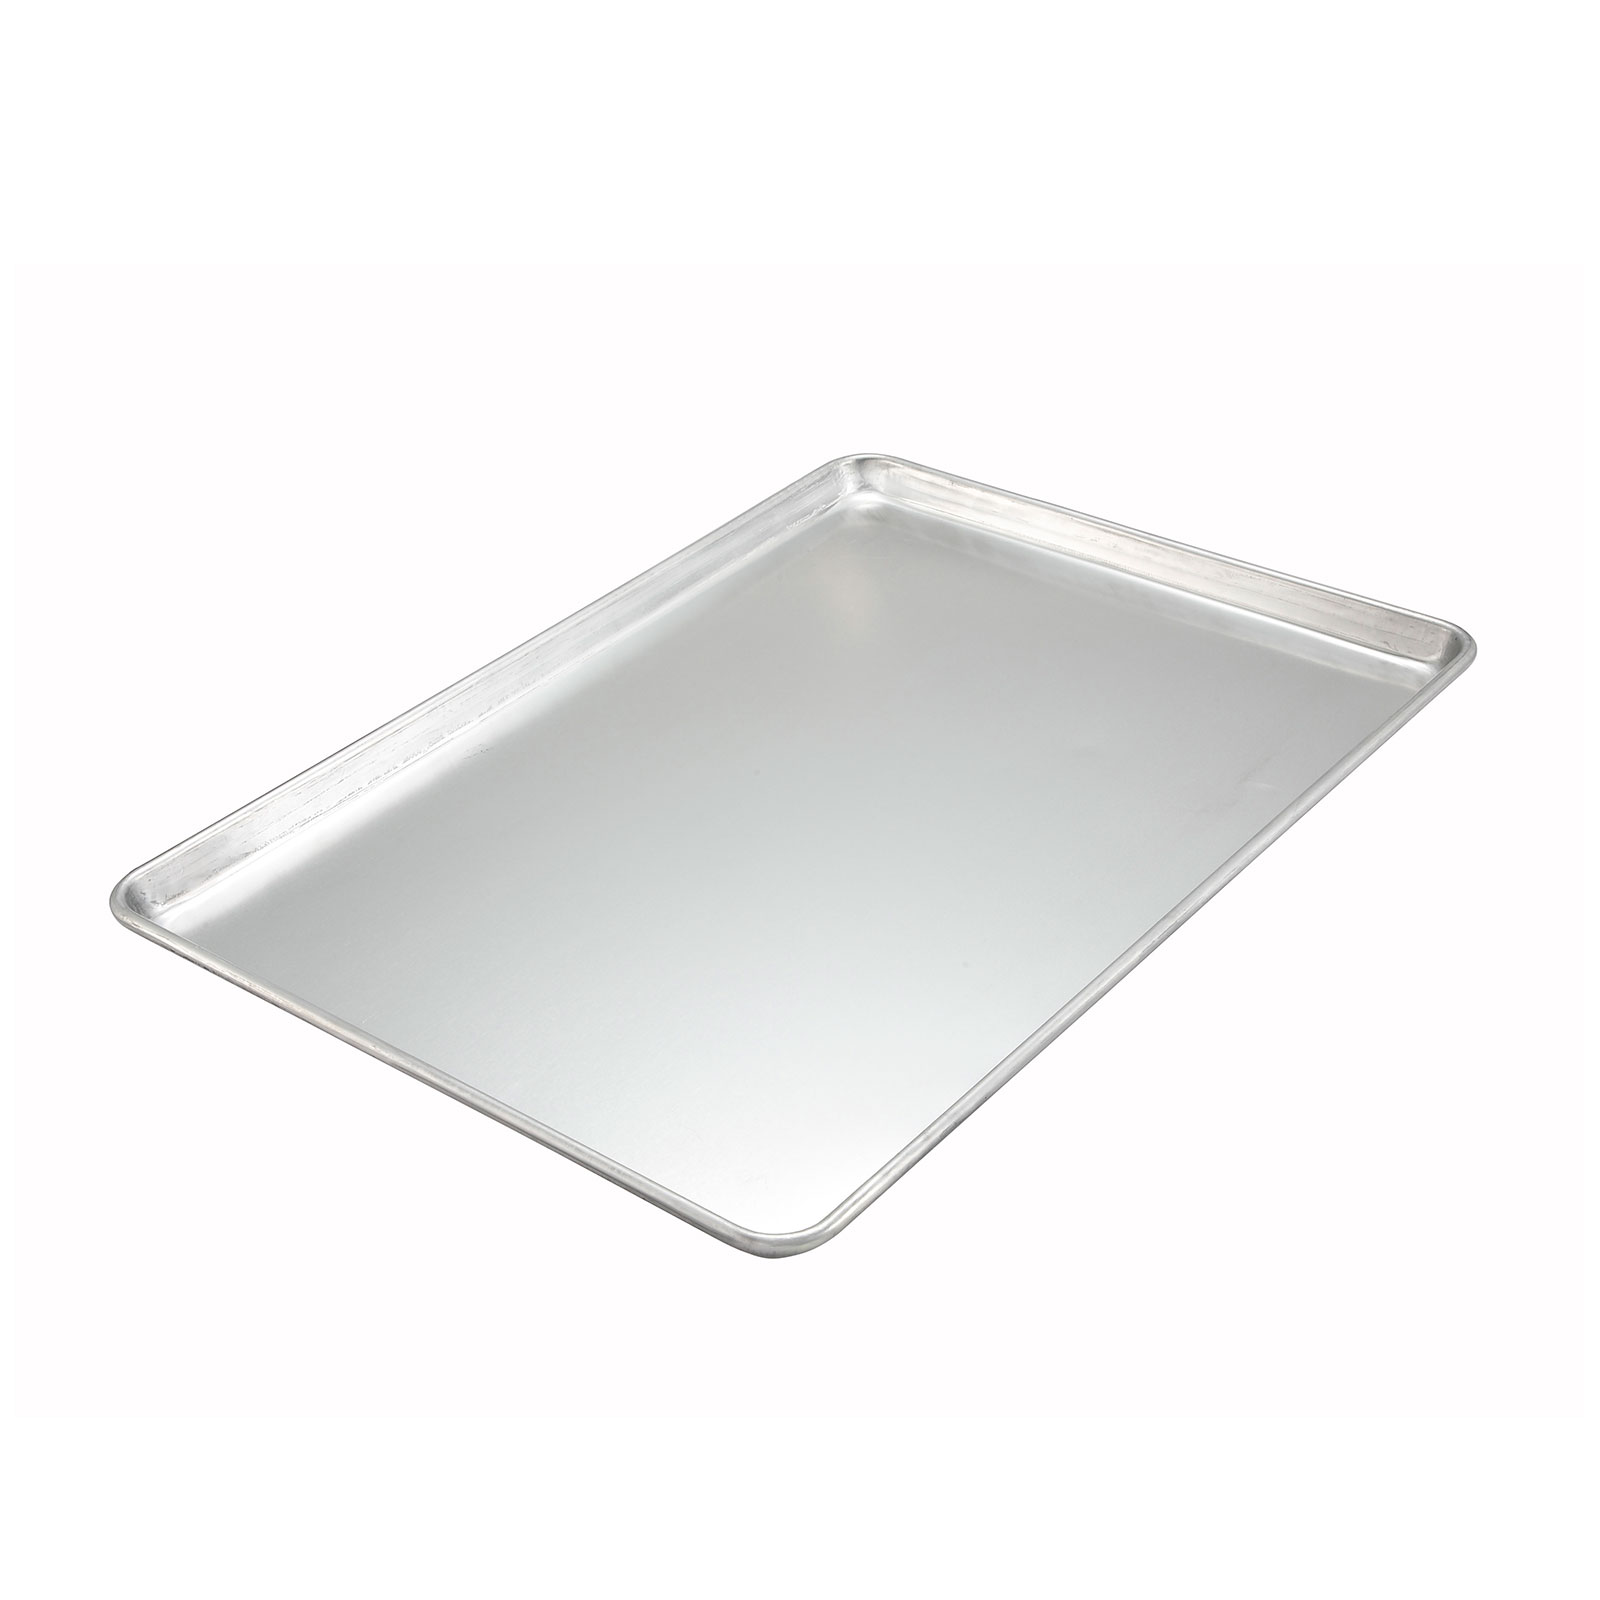 Winco ALXP-2618H bun / sheet pan